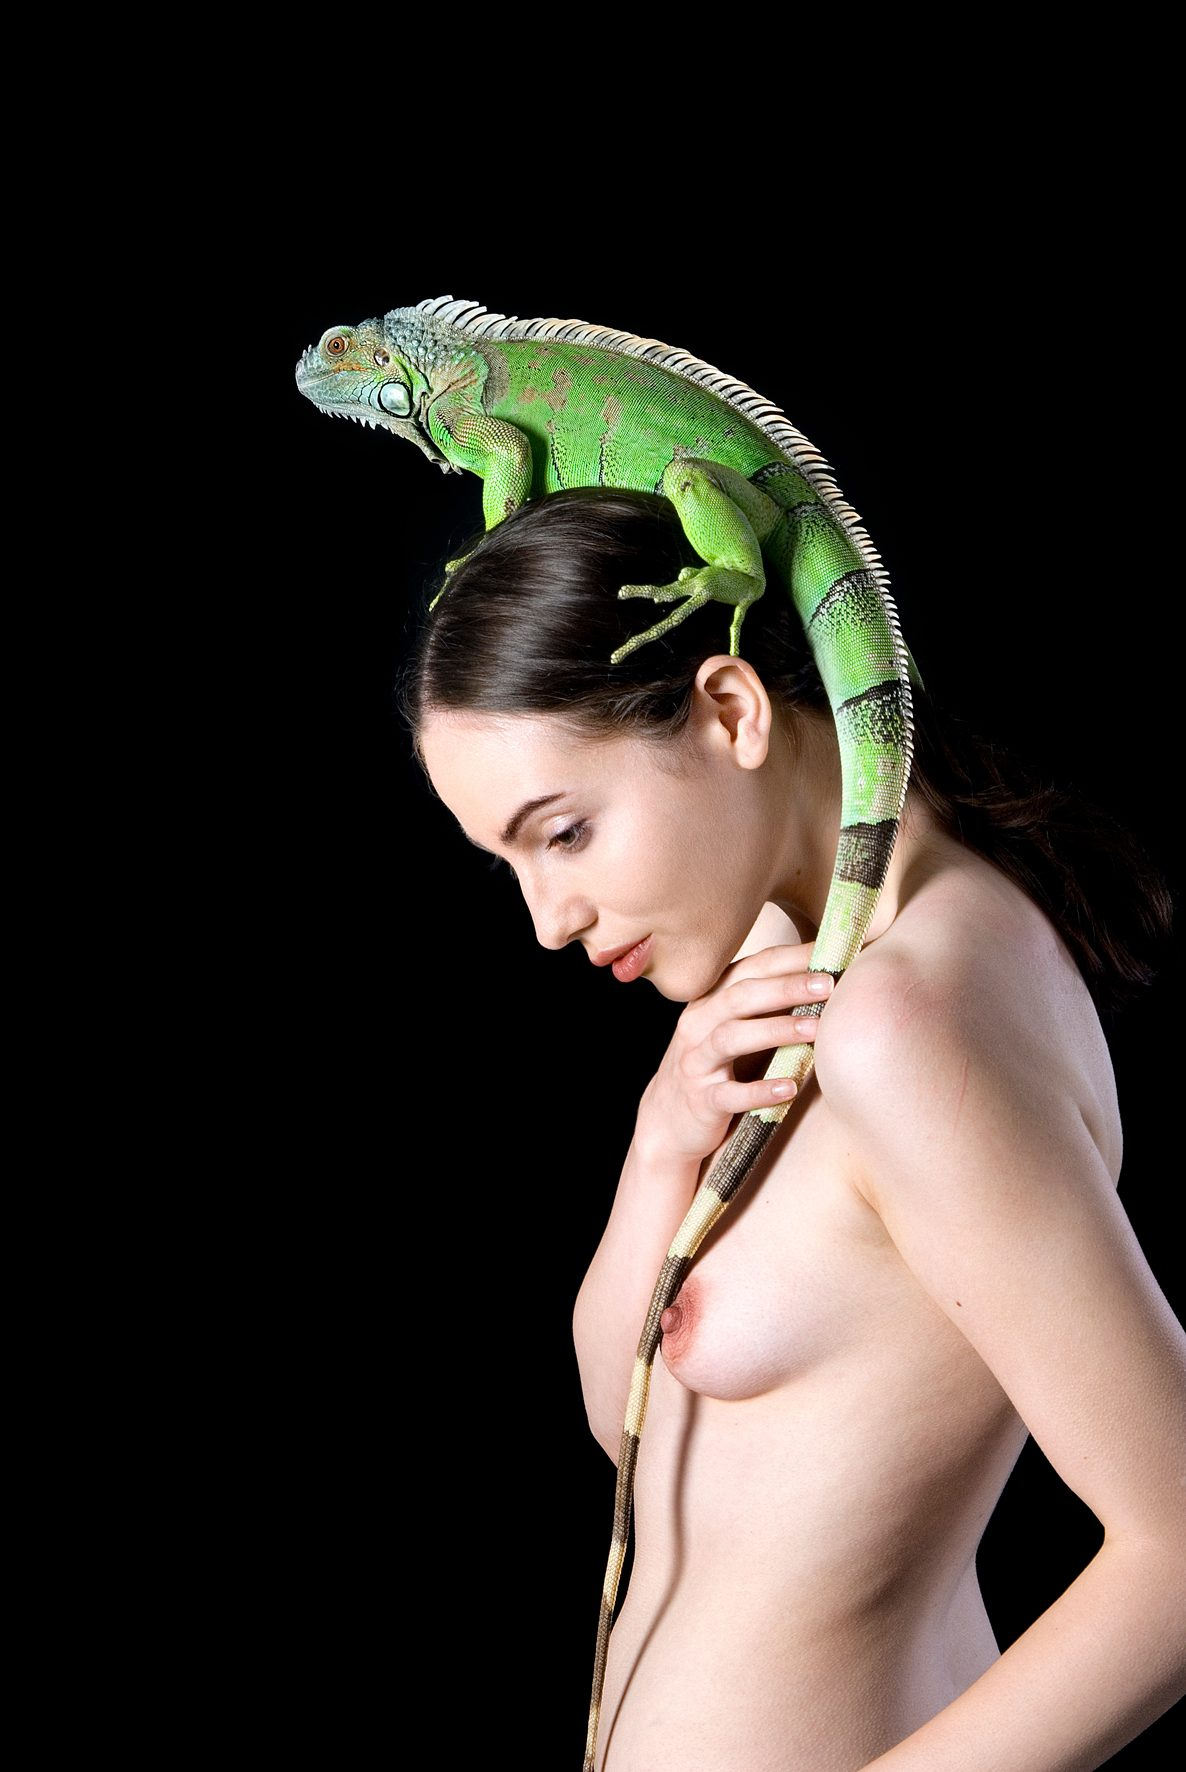 Untitled, For a Definition of The Nude Series (Woman w/ Iguana profile)